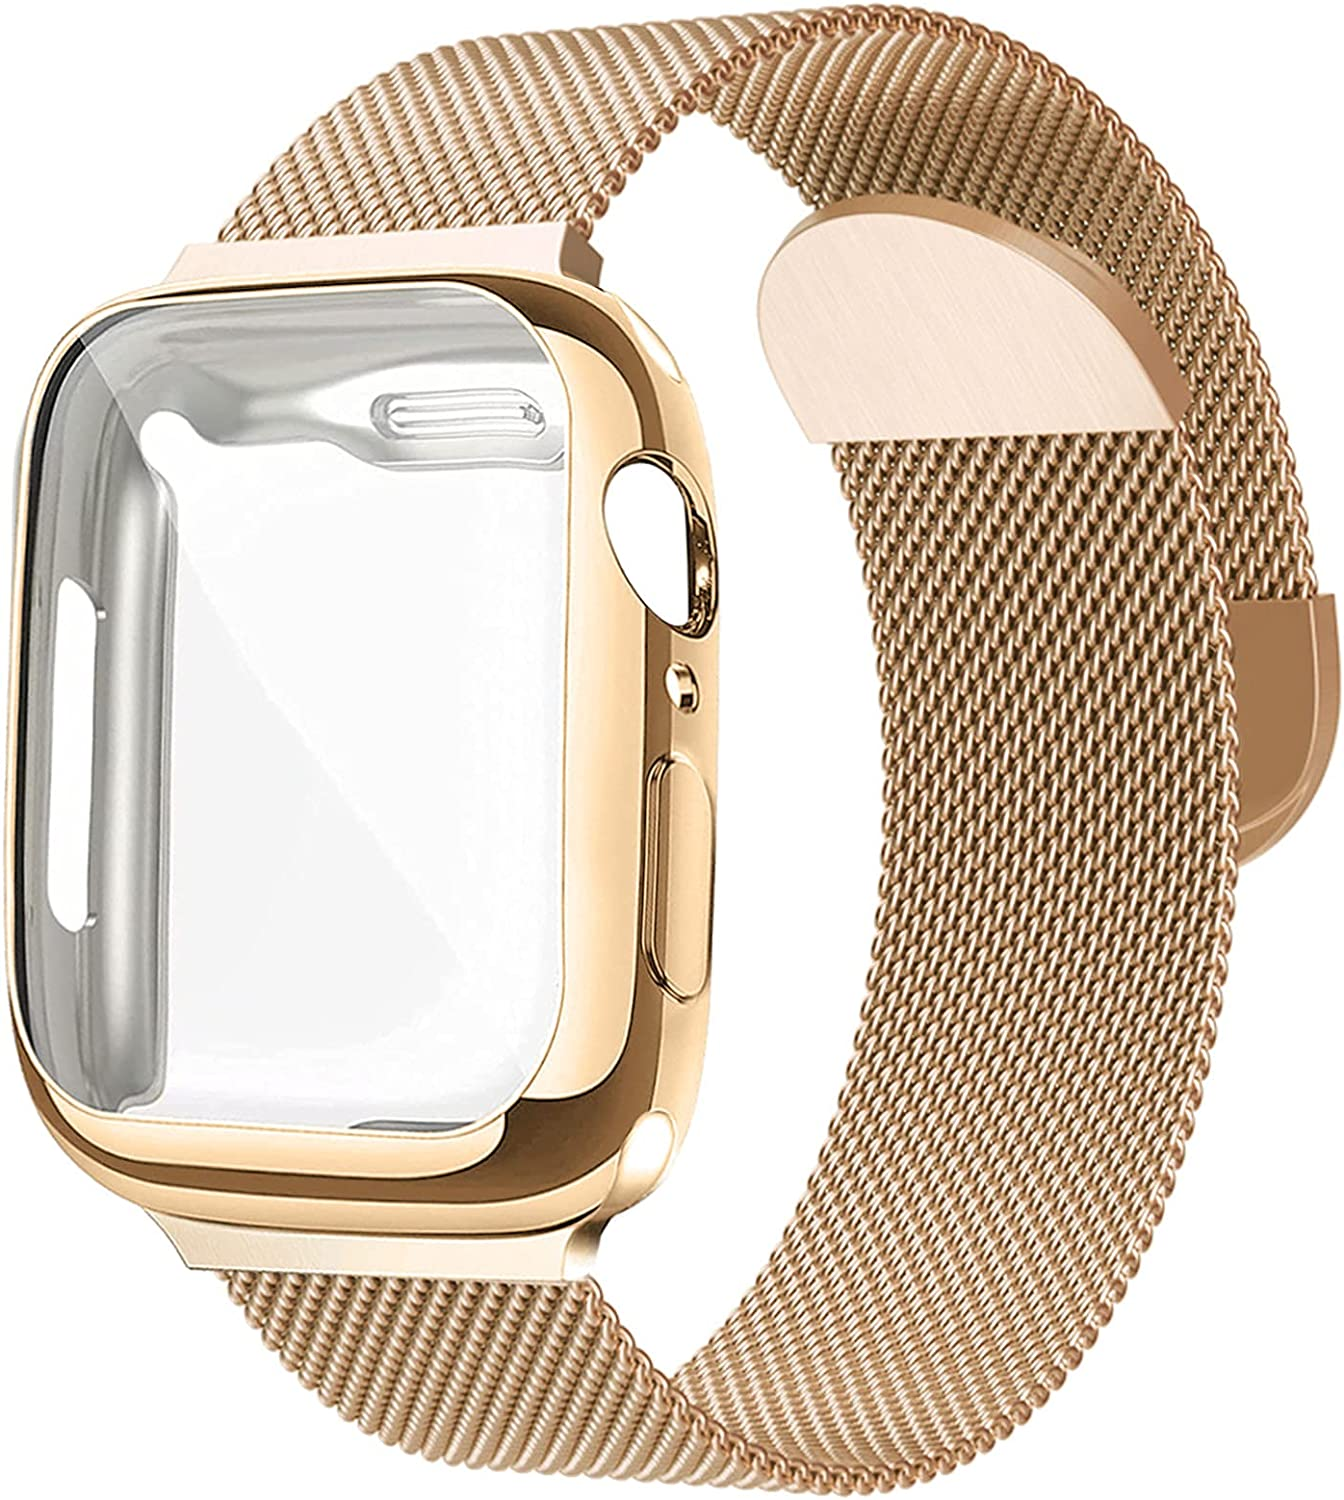 Metal Mesh Magnetic Band with Case Compatible with Apple Watch Bands 40mm,Sport Adjustable Stainless Steel Closure Milanese Loop Strap for Women Men Compatible for iWatch Series SE/6/5/4,Gold